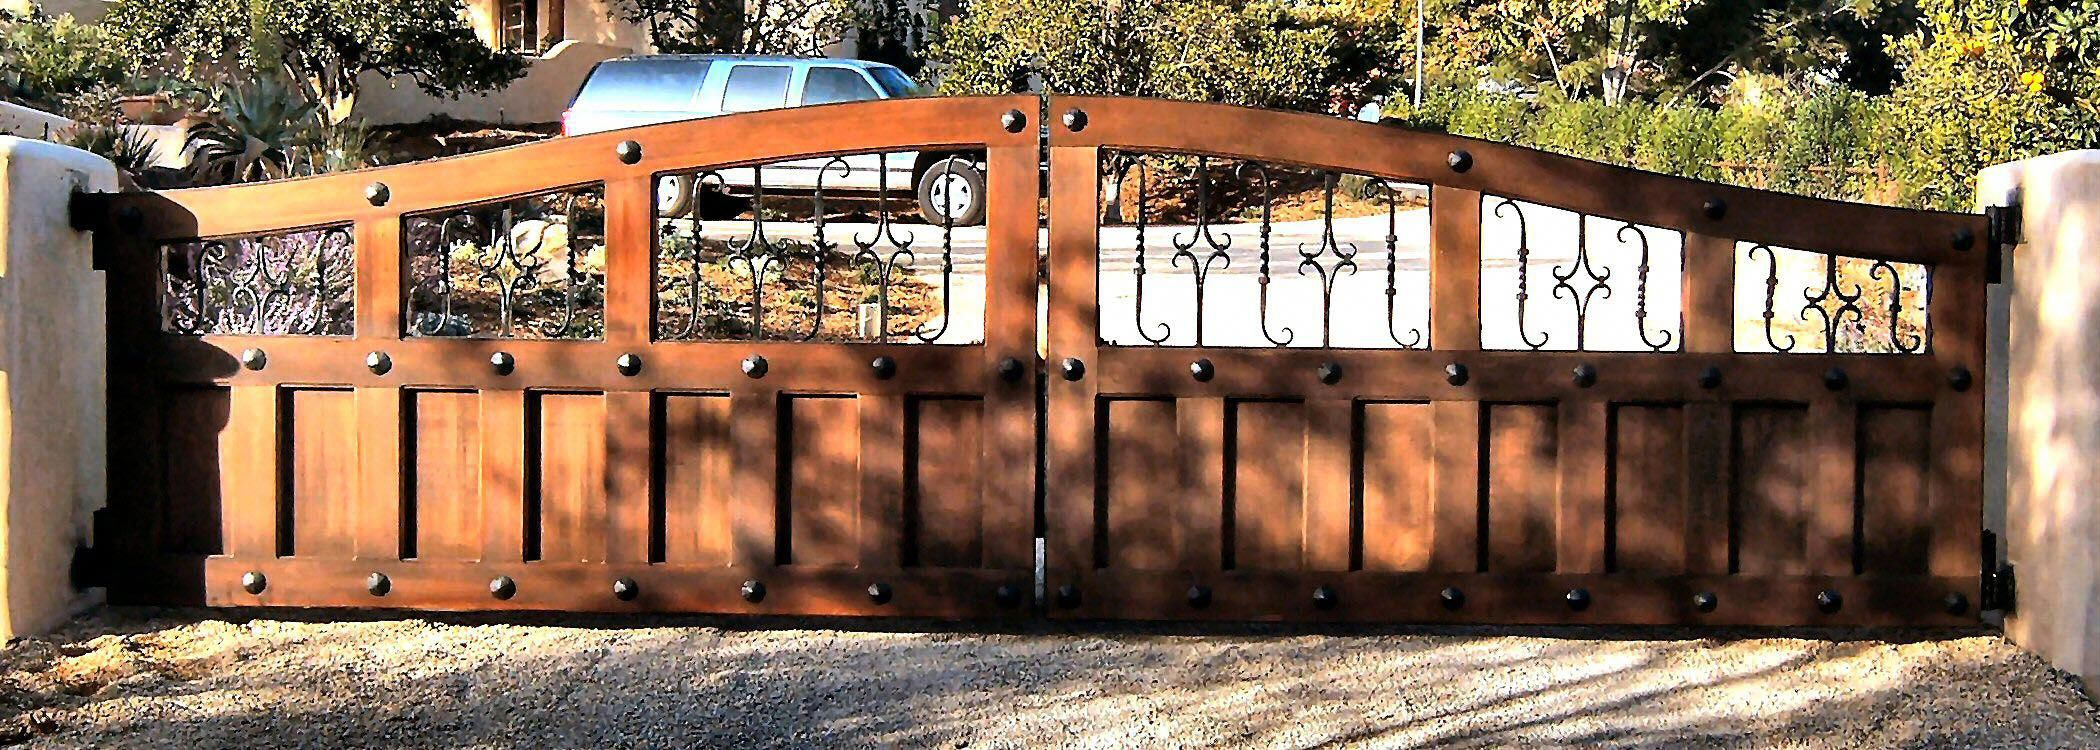 Rustic Or Tuscan Gate Designs Using Clavos Wood And Wrought Iron